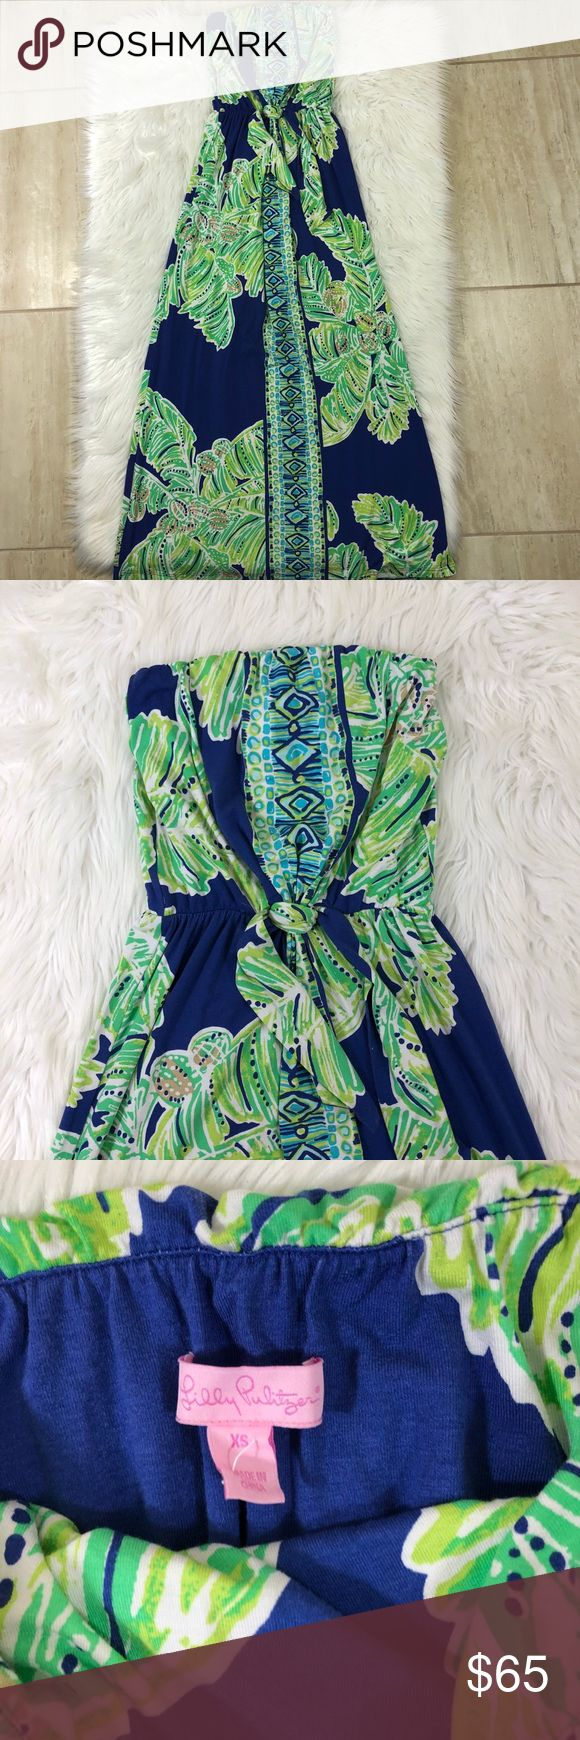 """Lilly Pulitzer Iris Blue Latitude Rosalina Maxi Lilly Pulitzer Iris Blue Latitude Rosalina Maxi Dress Size XS Faux tie at waistline  In excellent condition, no stains or rips. Measurement: Length 51"""" Smoke and Pet free house Lilly Pulitzer Dresses Maxi"""